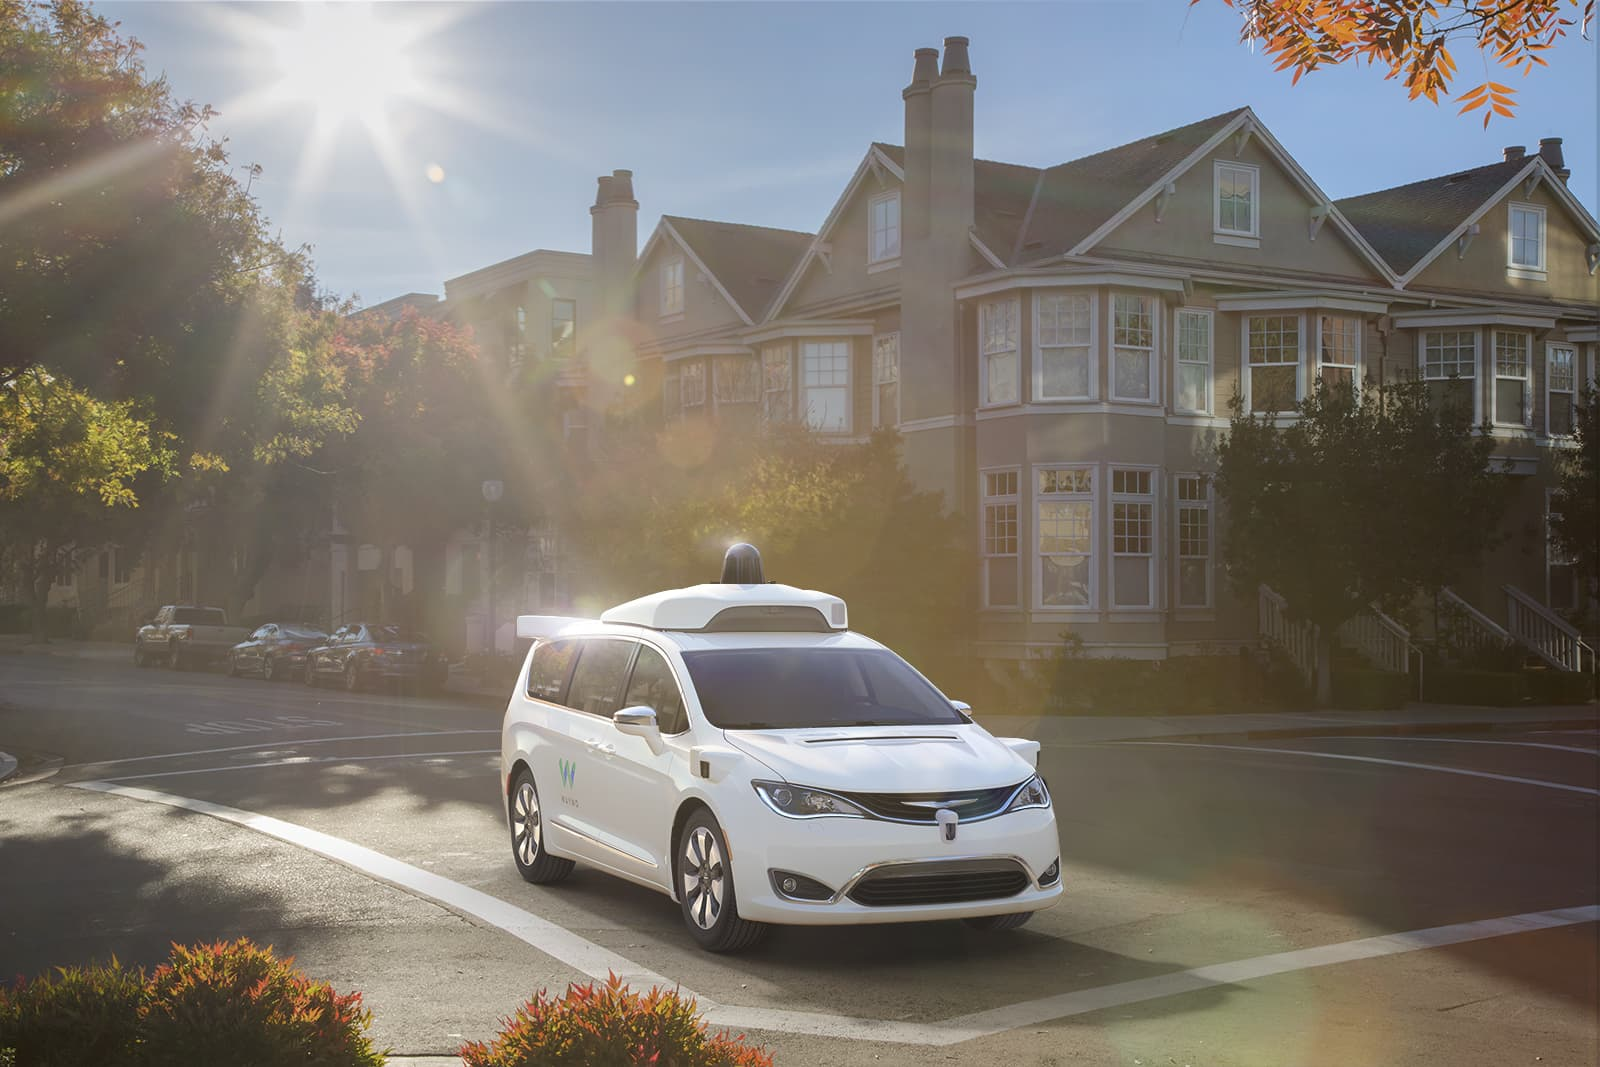 Alphabet's robotaxis get one step closer to commercial use in California